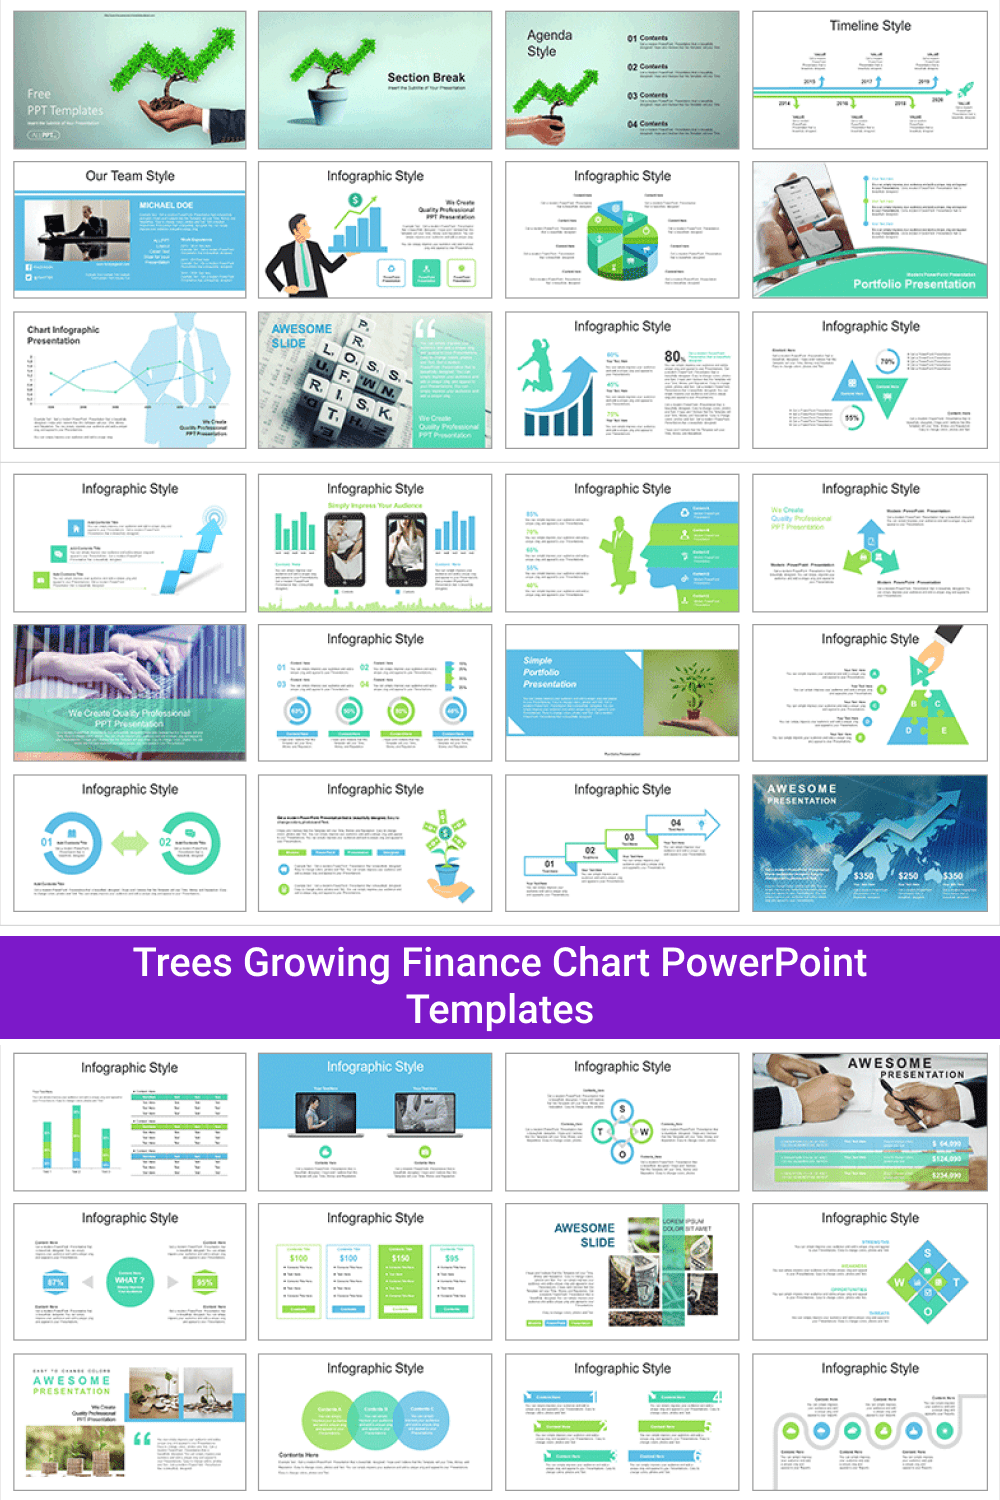 Trees Growing Finance Chart PowerPoint Templates.